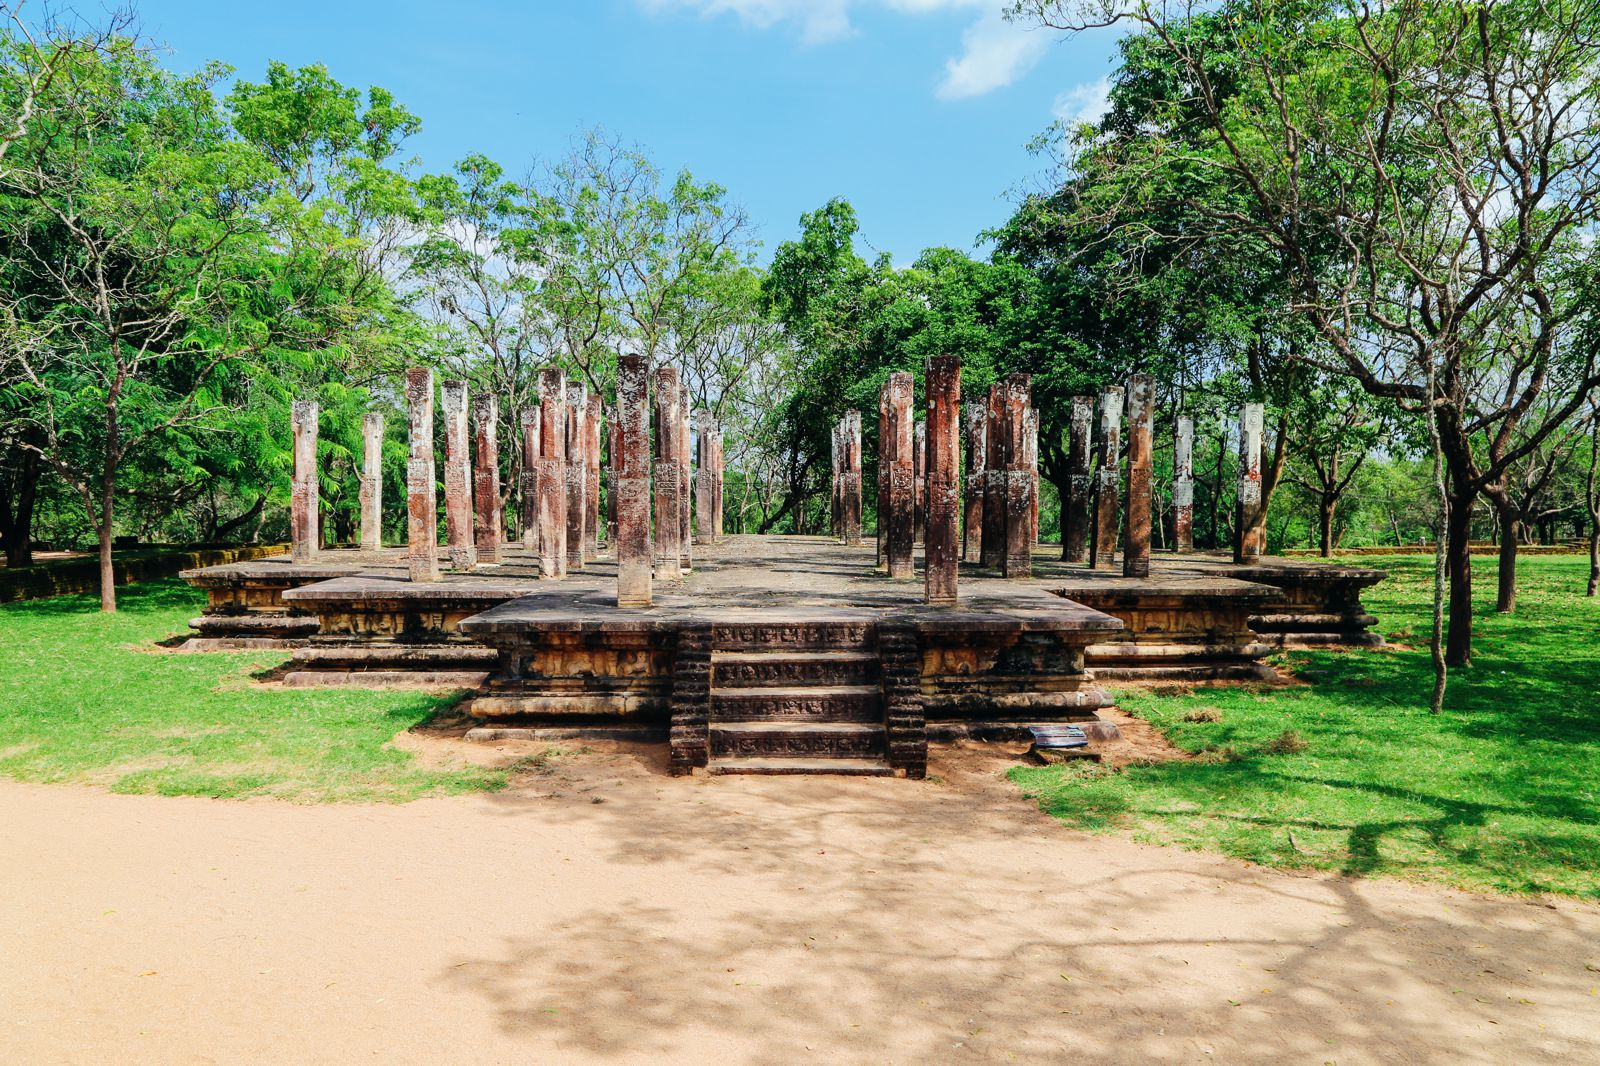 The Ancient City Of Polonnaruwa In Sri Lanka // Part 2 Of 2 (43)